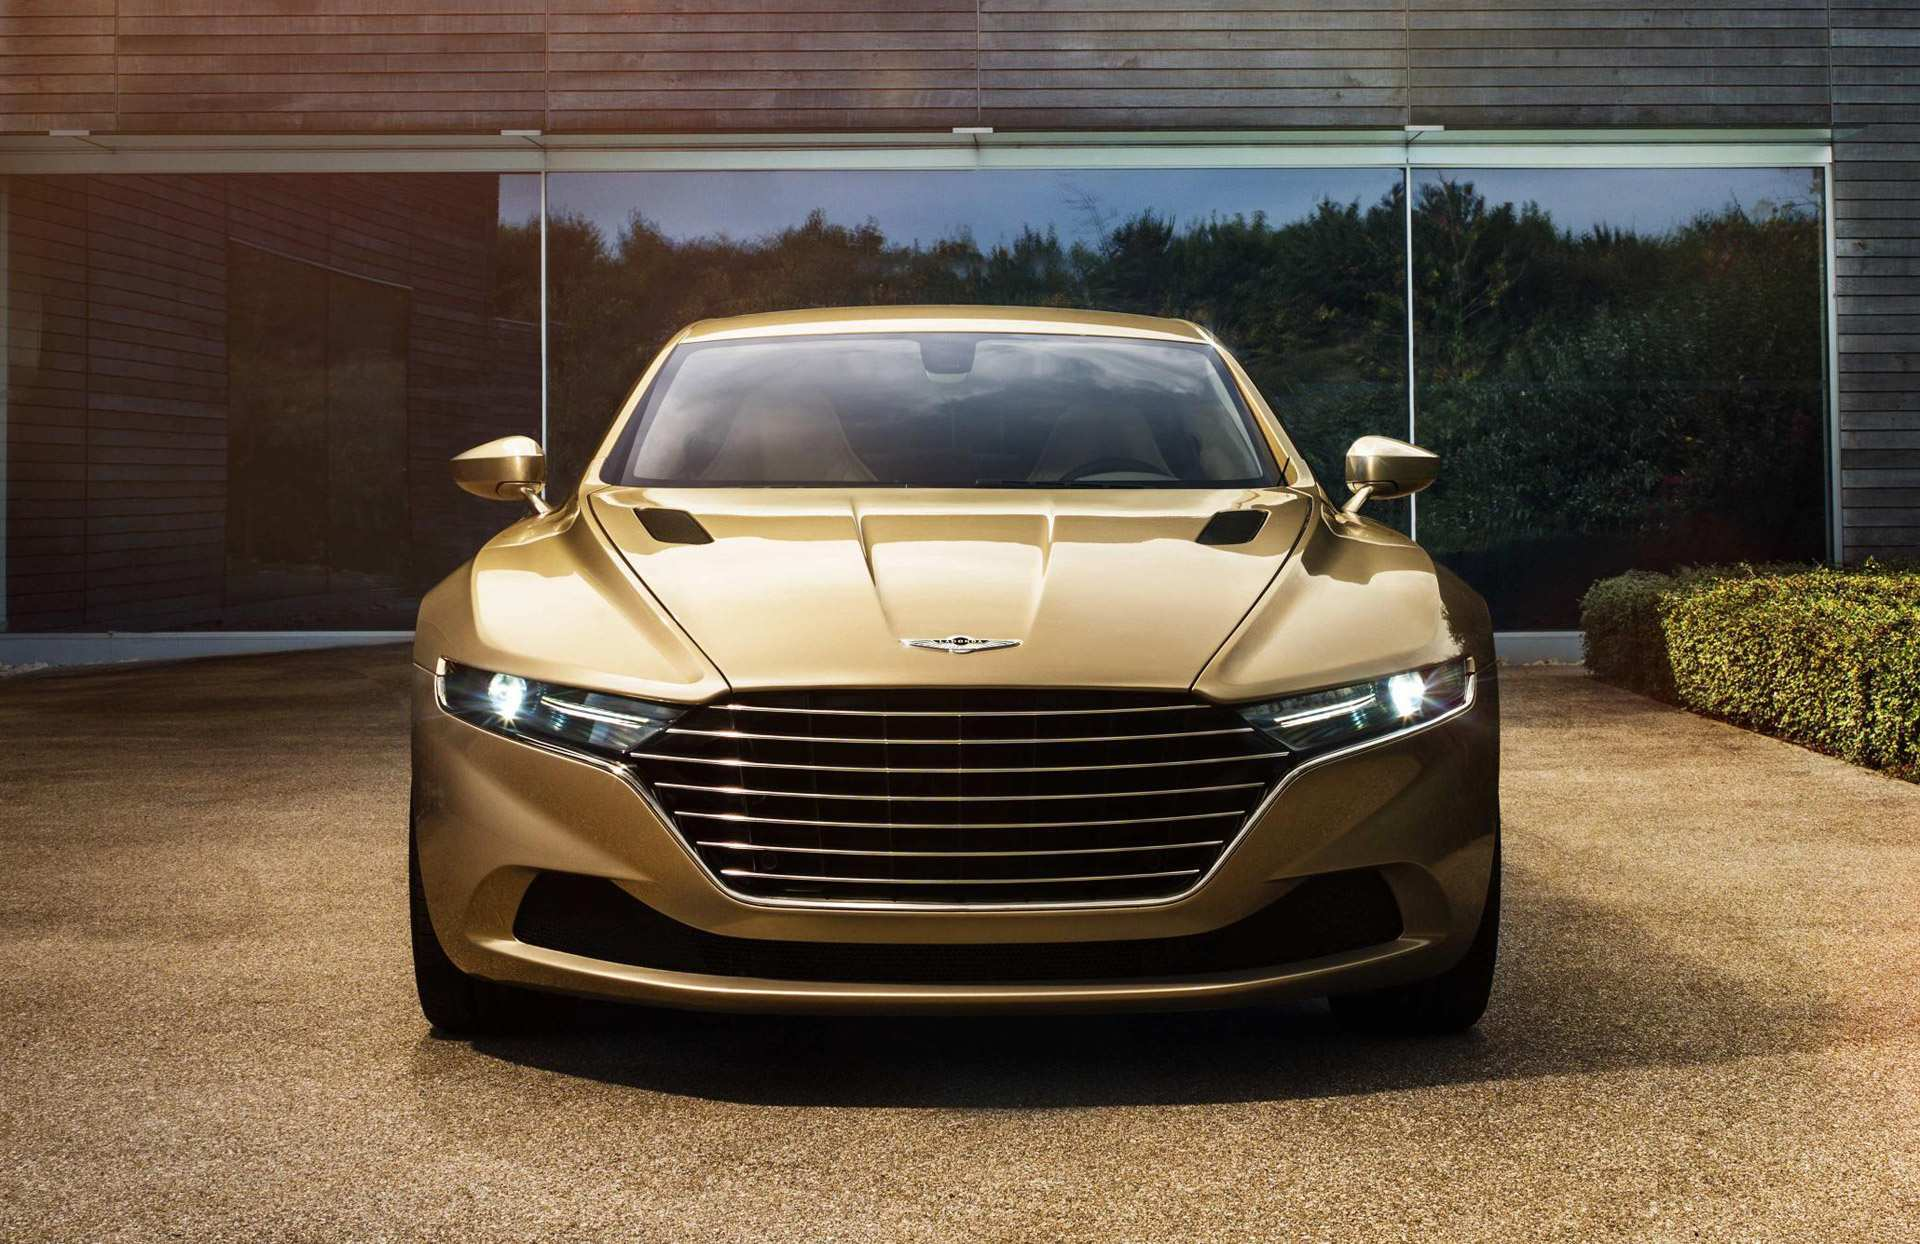 26 The Best 2020 Aston Martin Lagonda Pricing